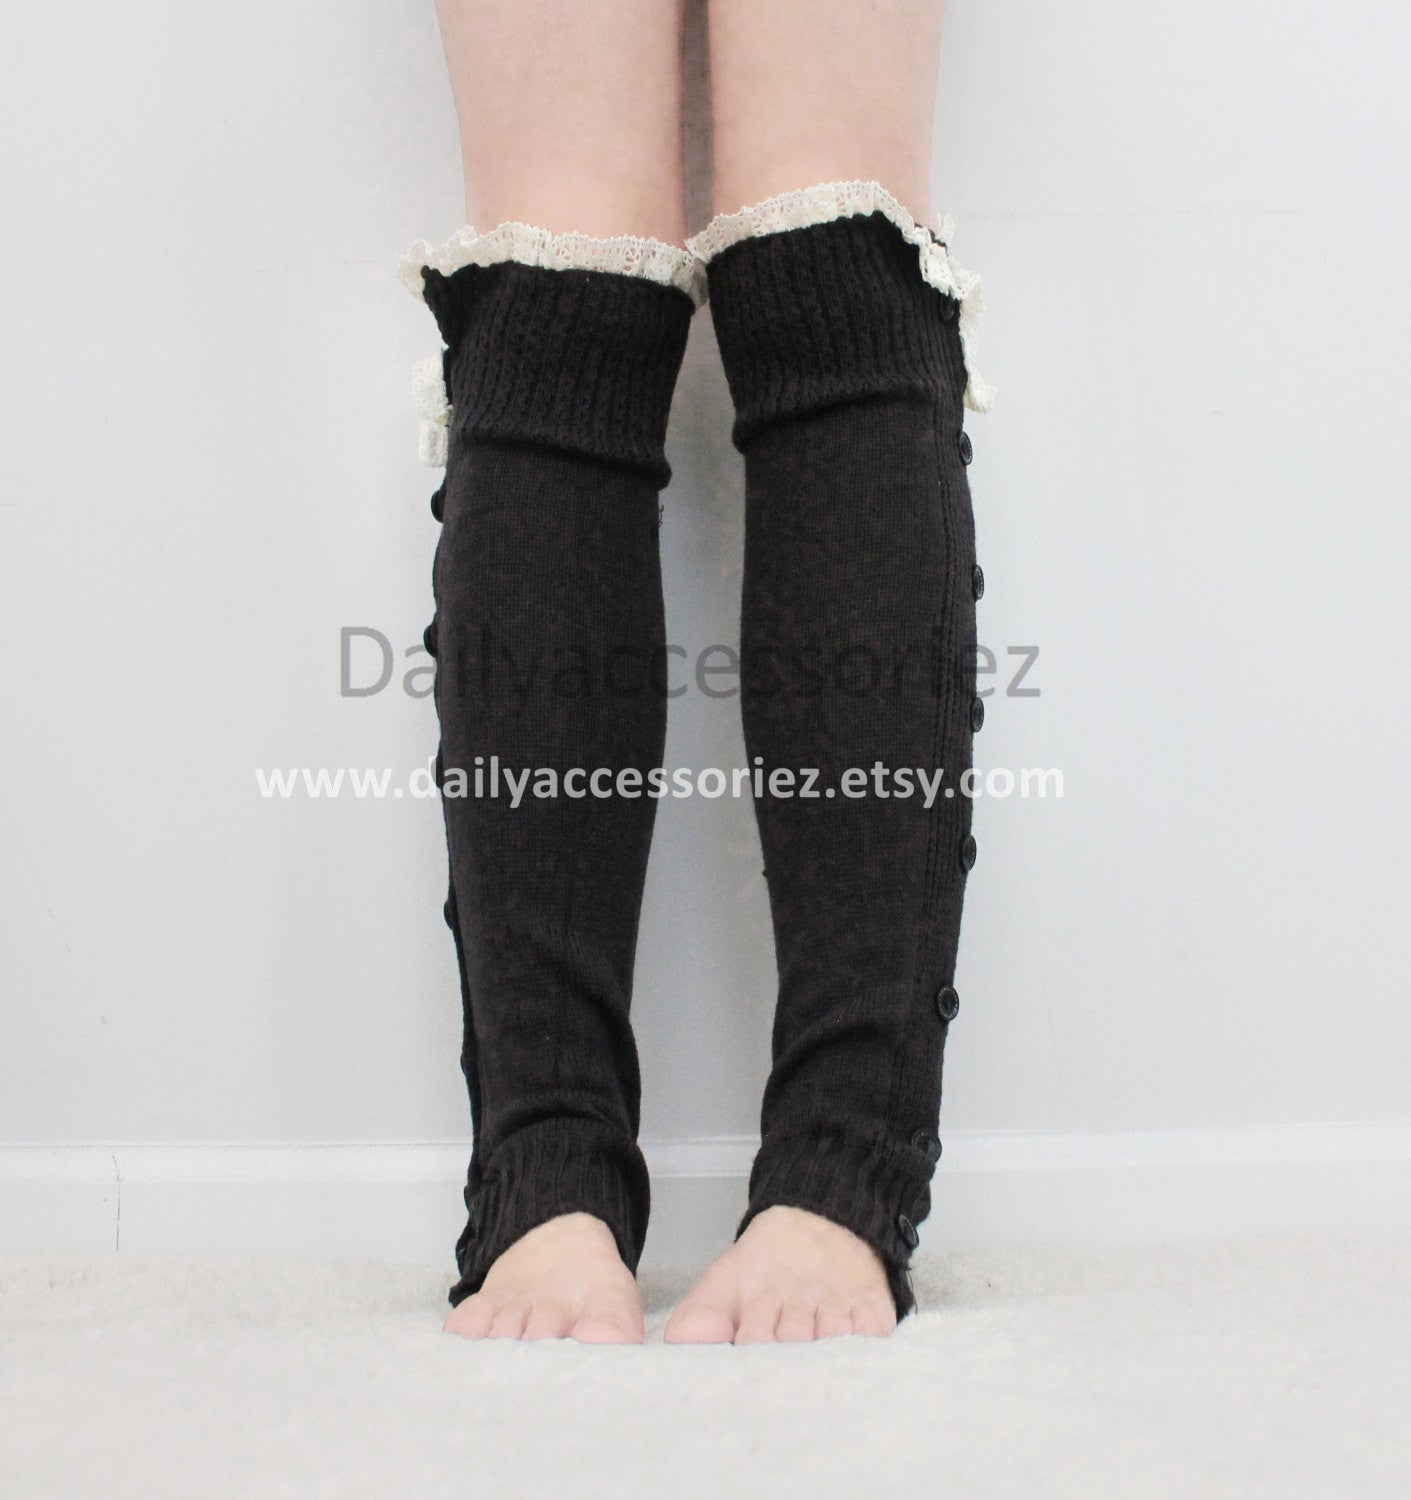 black womens leg warmers - Bean Concept - Etsy